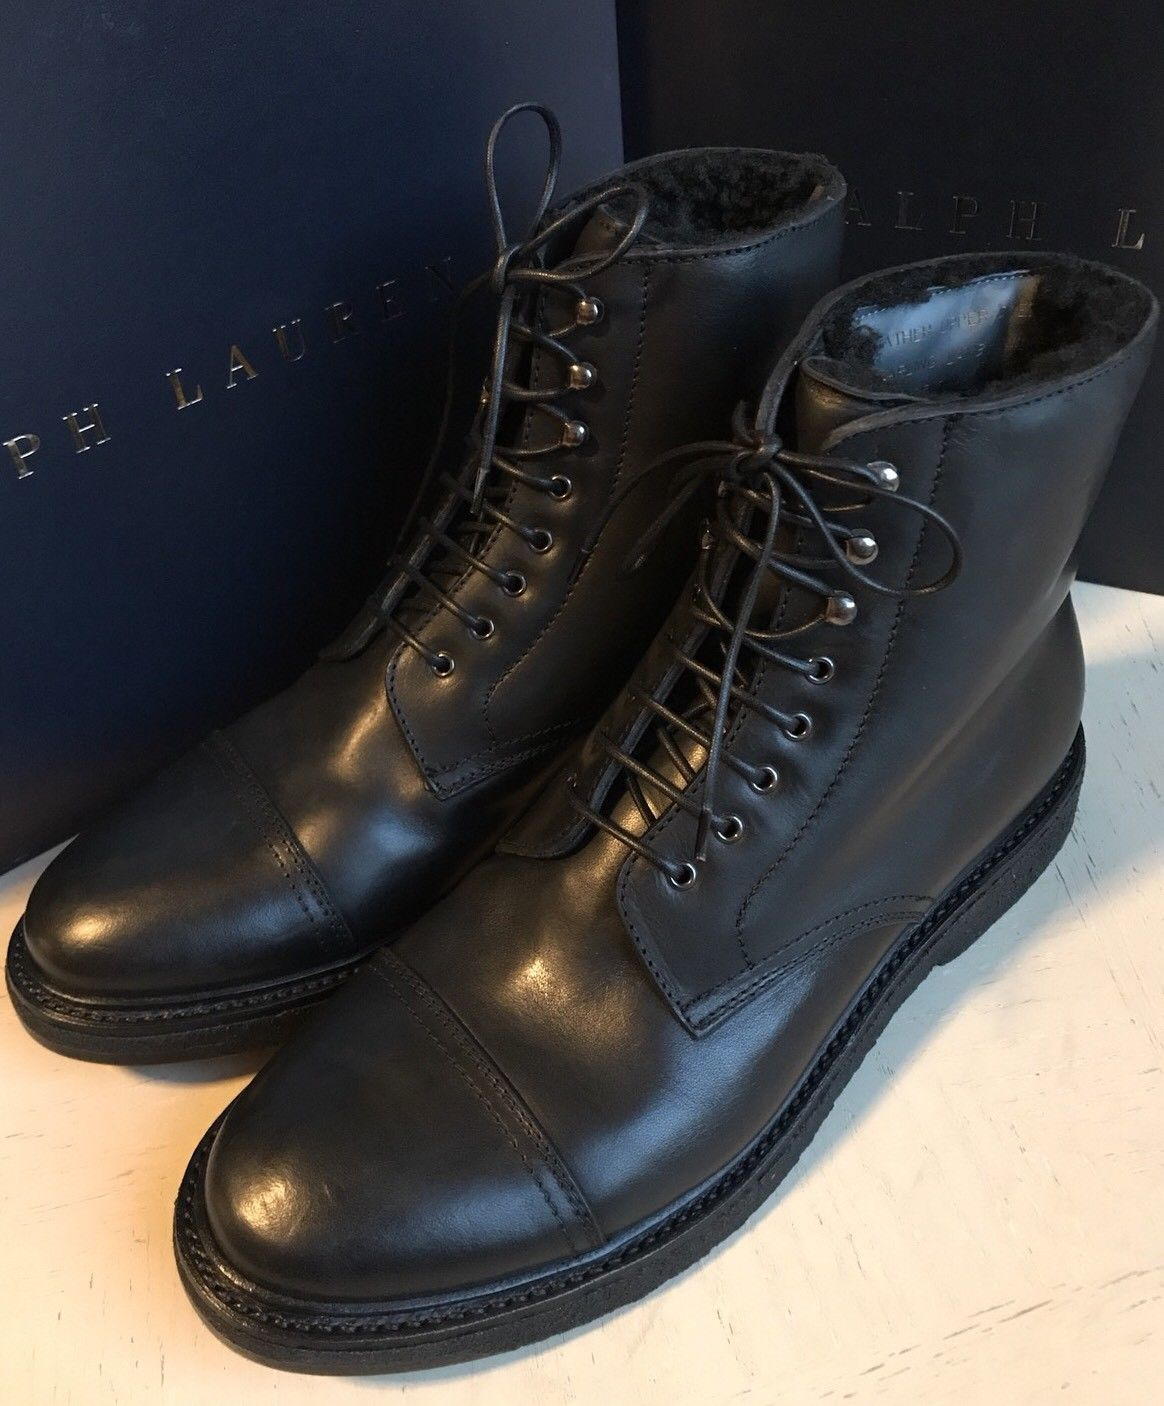 New $1100 Ralph Lauren Purple Label Mens Shearling Lined Boots Shoes Black 10 US - BAYSUPERSTORE